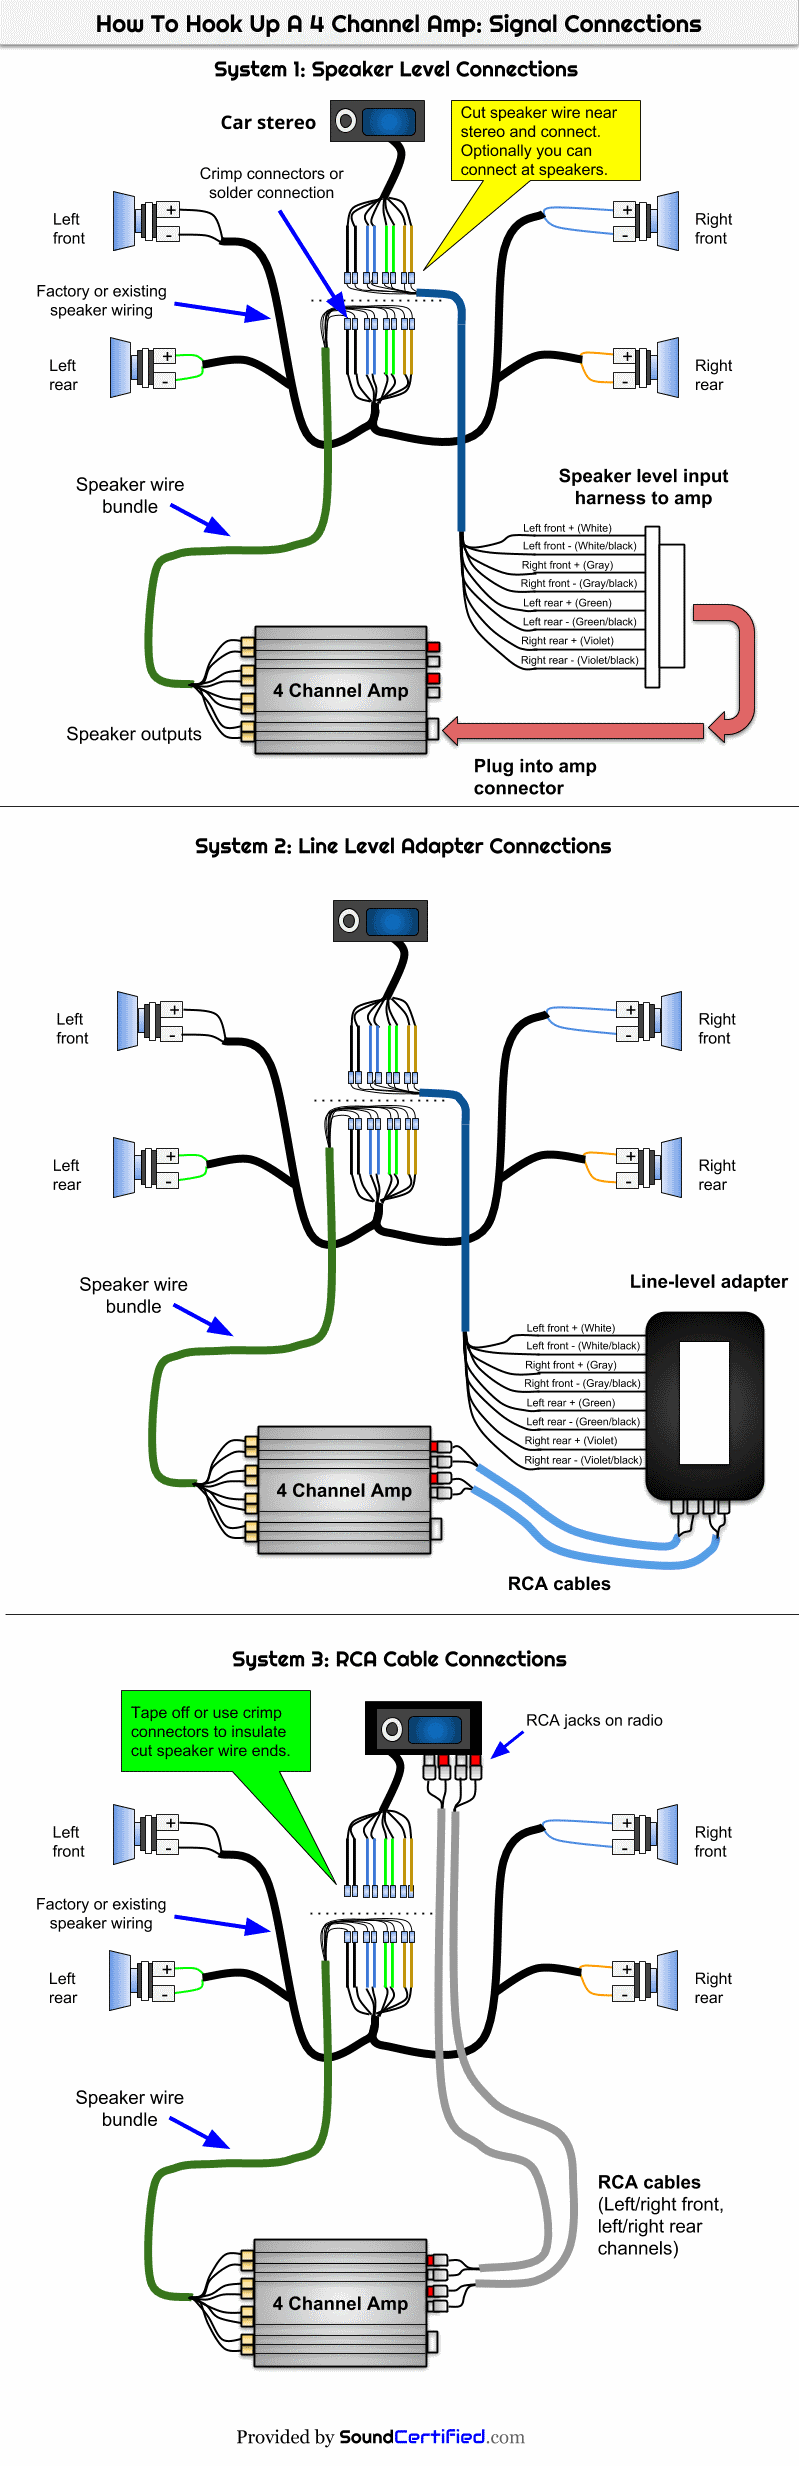 How To Hook Up A 4 Channel Amp Front And Rear Speakers Wire Harness Cable Technician Signal Connection Diagram